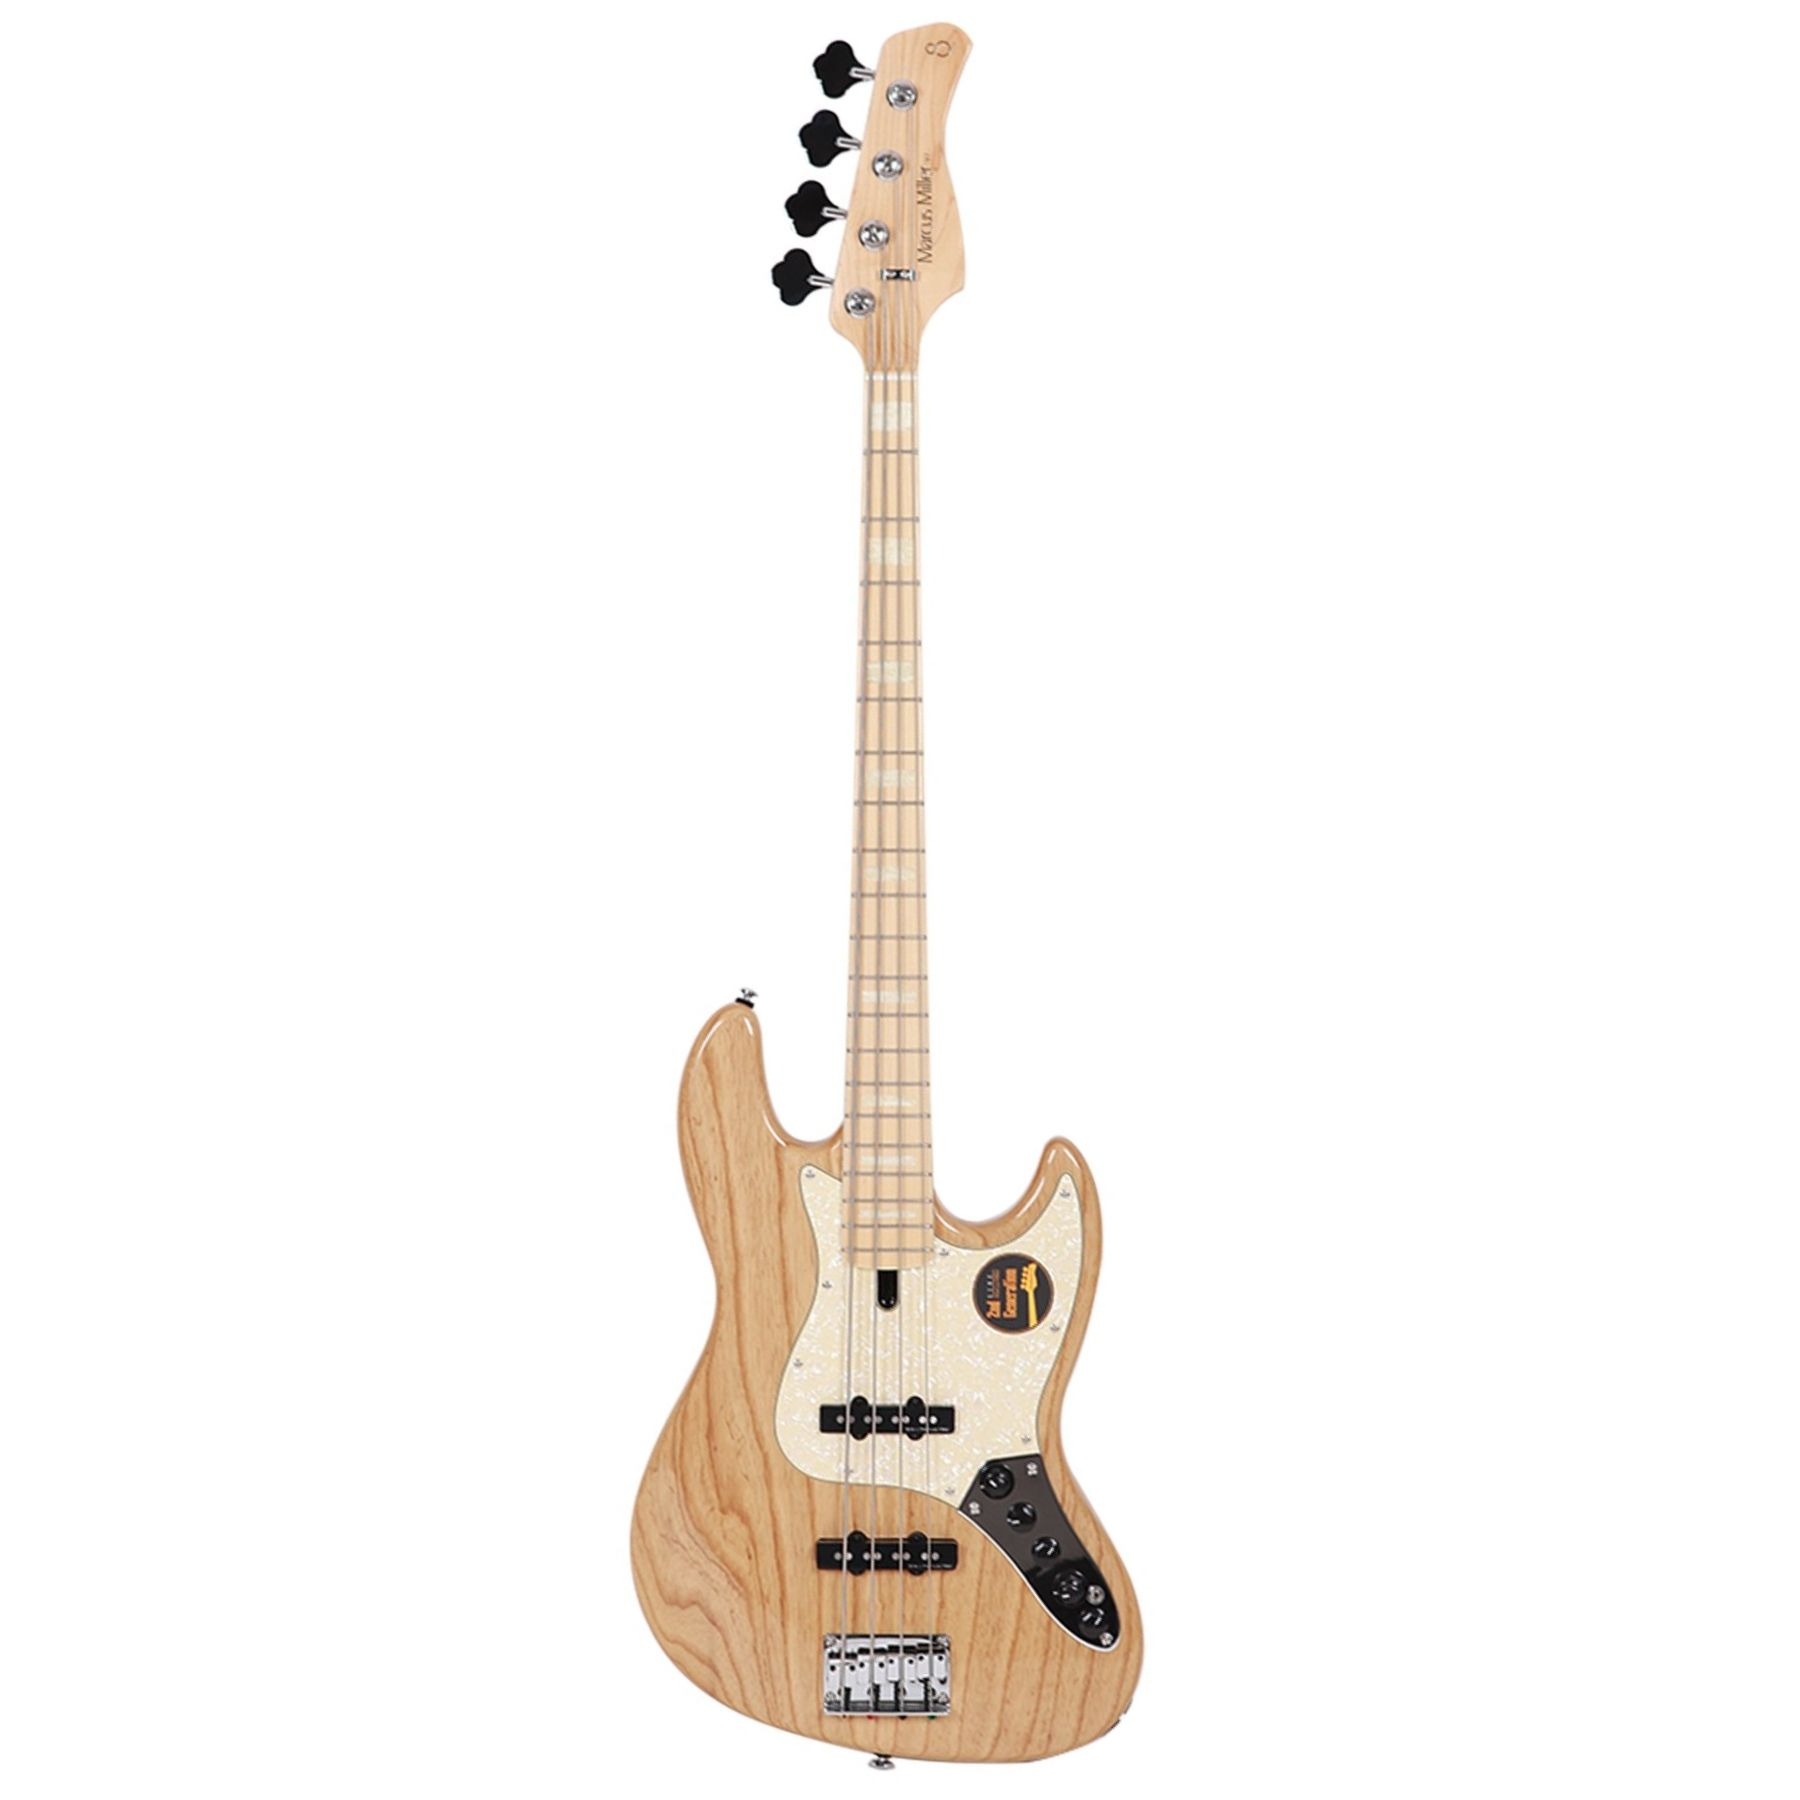 Sire Marcus Miller V7 Swamp Ash 4 String Bass Guitar - 2nd Generation